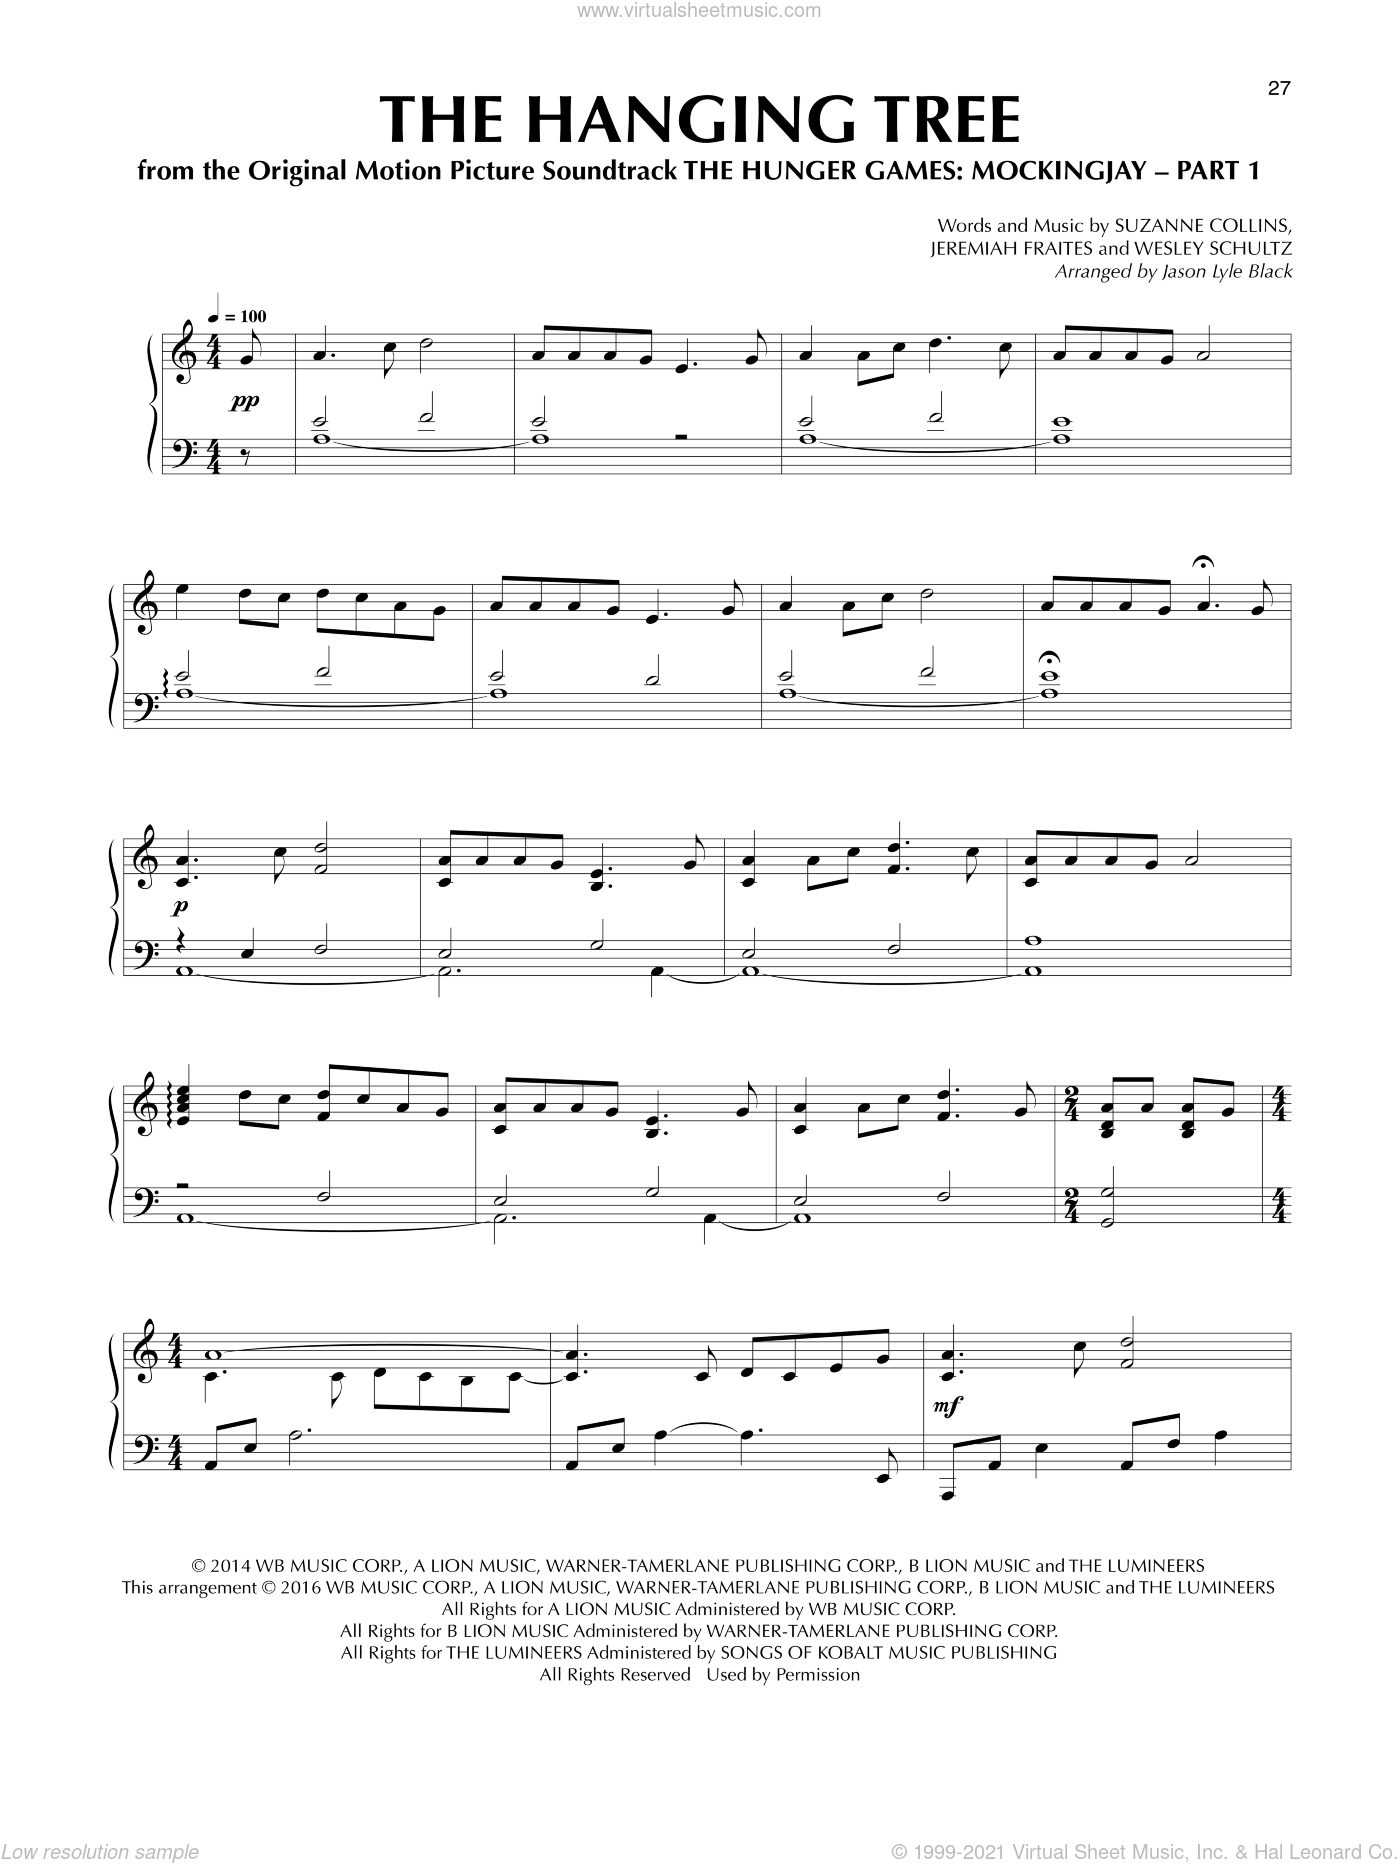 The Hanging Tree sheet music for piano solo by Jason Lyle Black and James Newton Howard, intermediate piano. Score Image Preview.